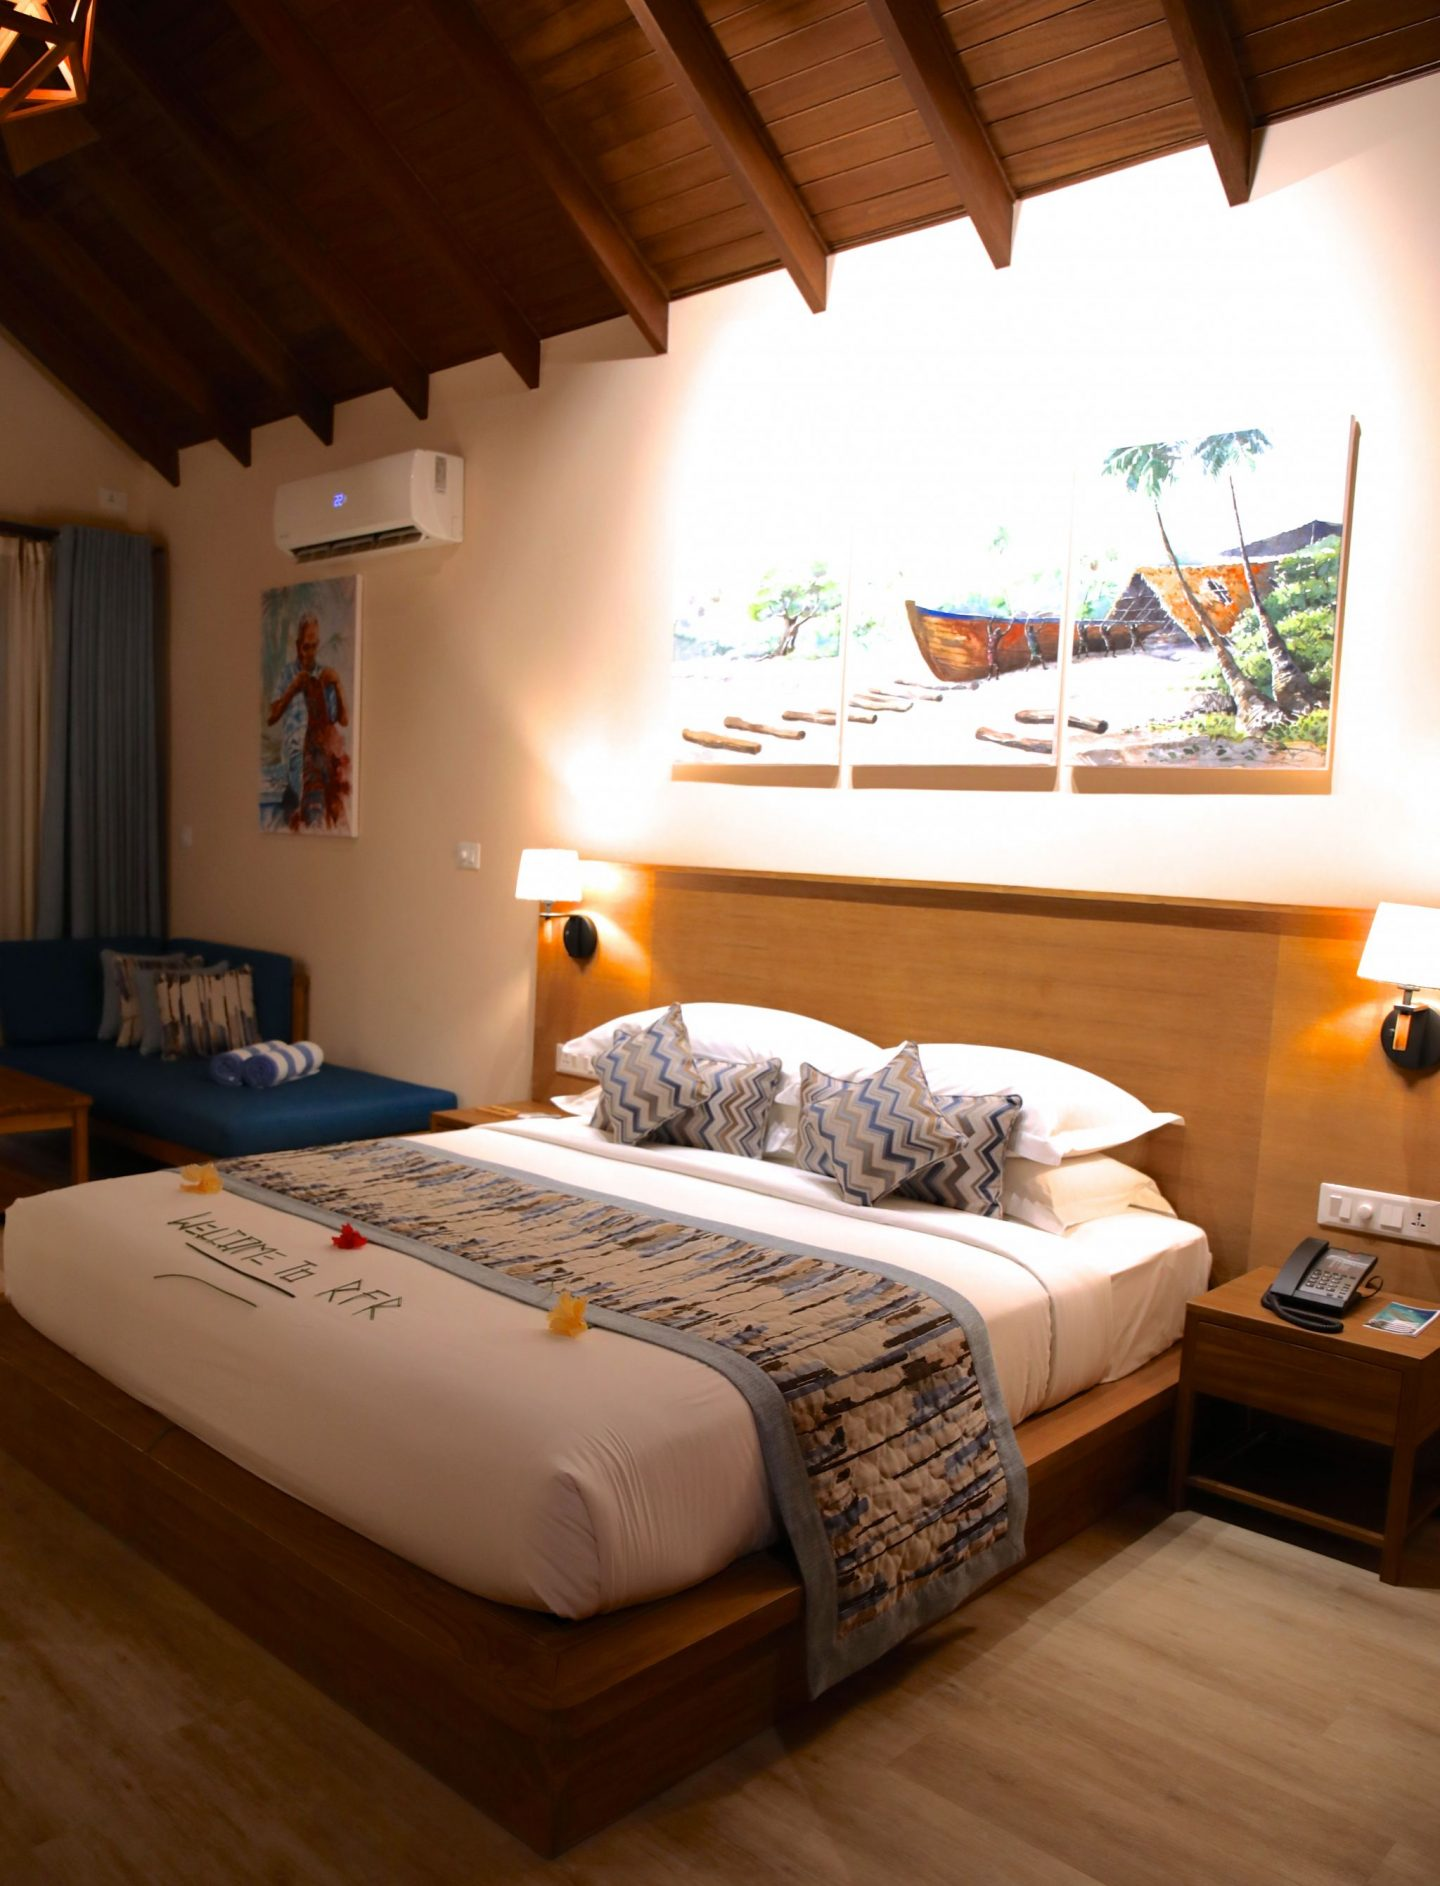 Deluxe Beach Villa room, Reethi Faru Resort, Raa Atoll, The Maldives, Katie KALANCHOE, Katie Heath